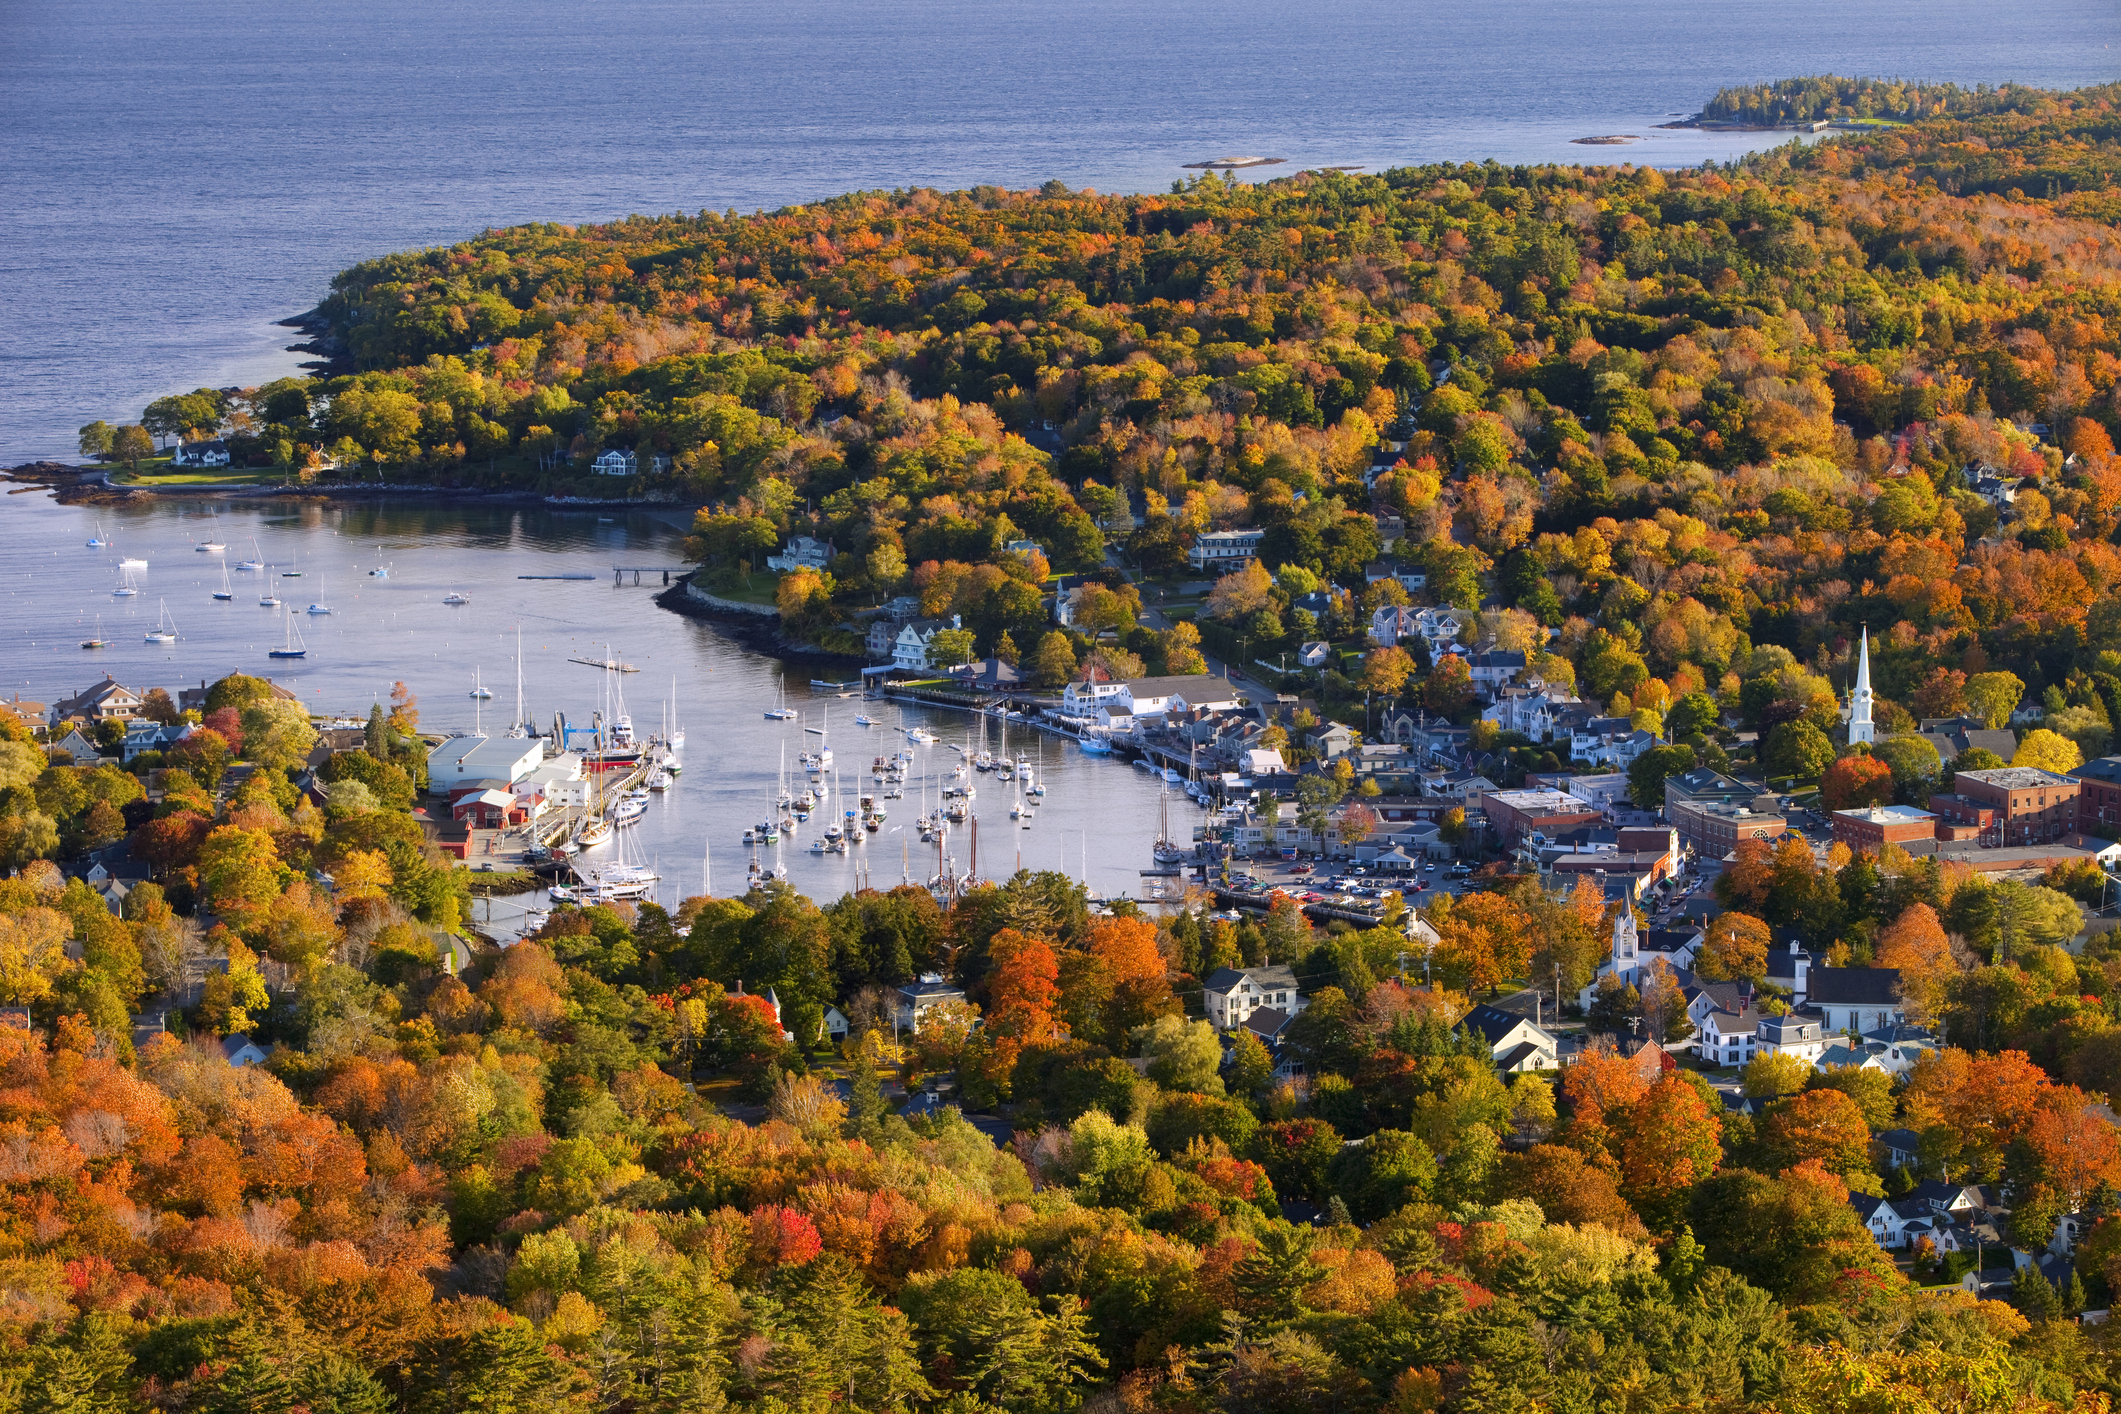 Camden Is A Small Maine Town That Looks Like A Hallmark Movie During The Fall